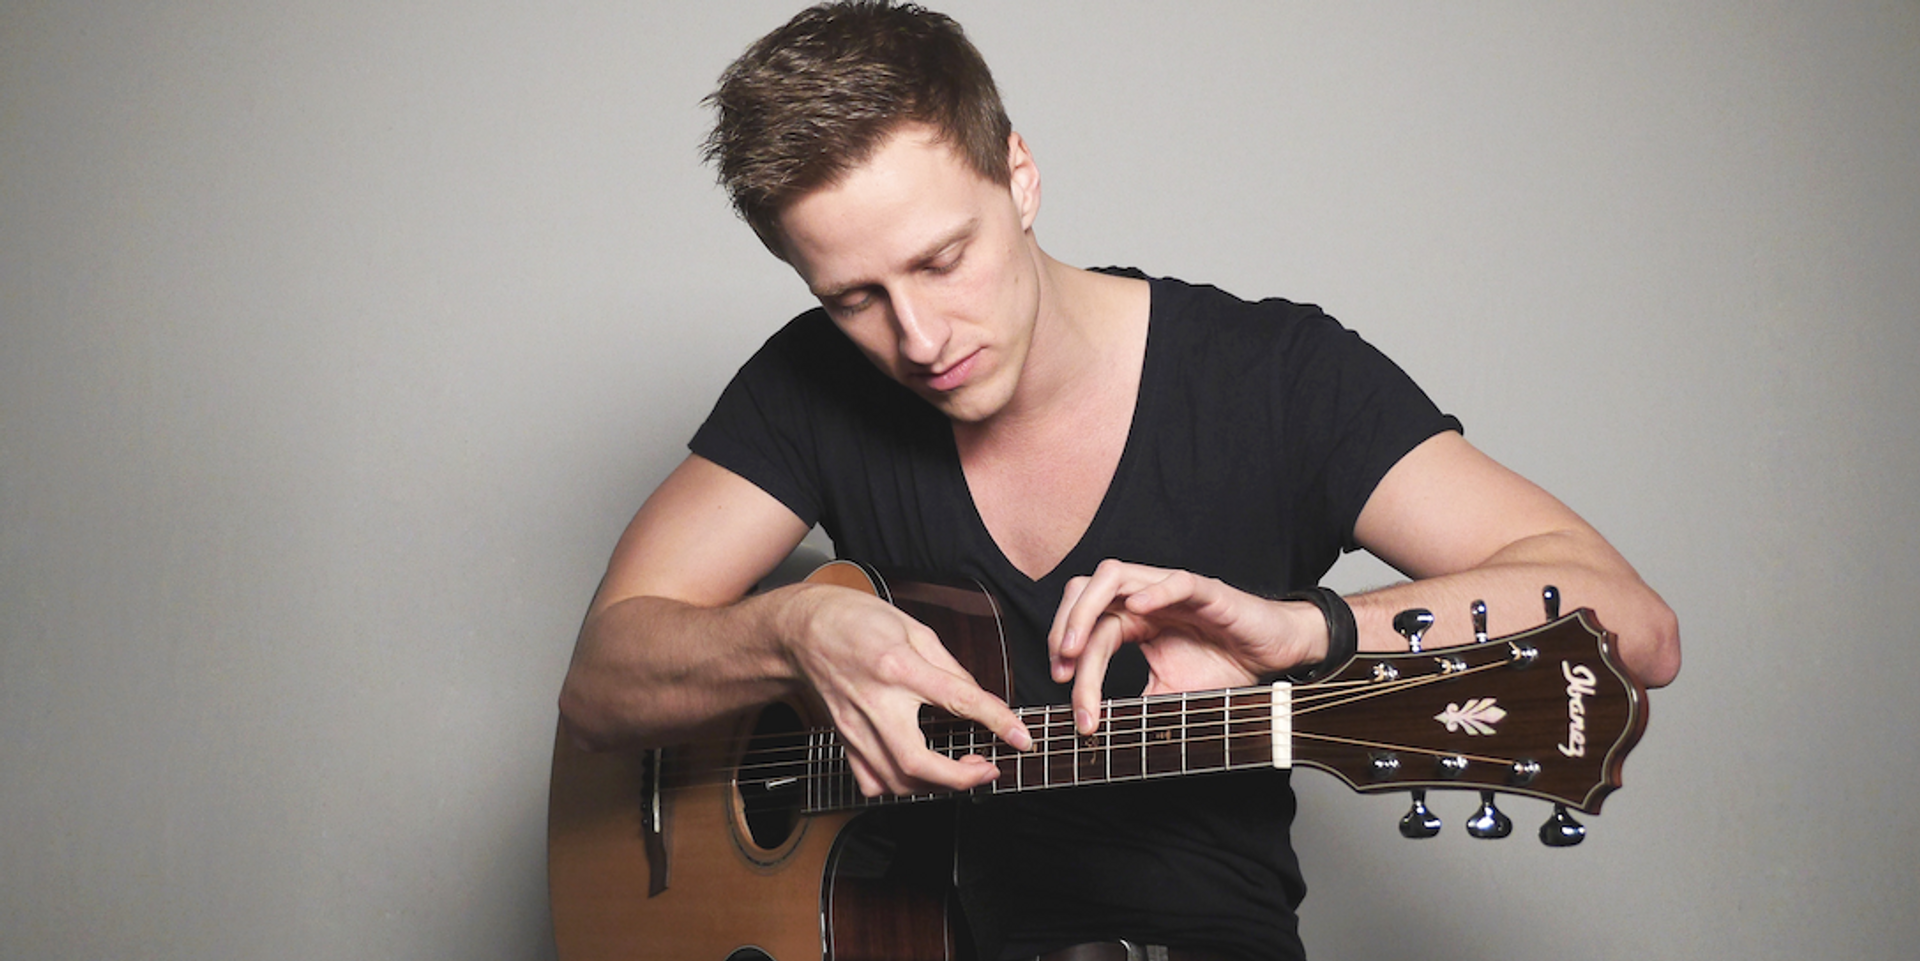 German fingerstyle guitarist Tobias Rauscher to host acoustic guitar masterclass in Singapore